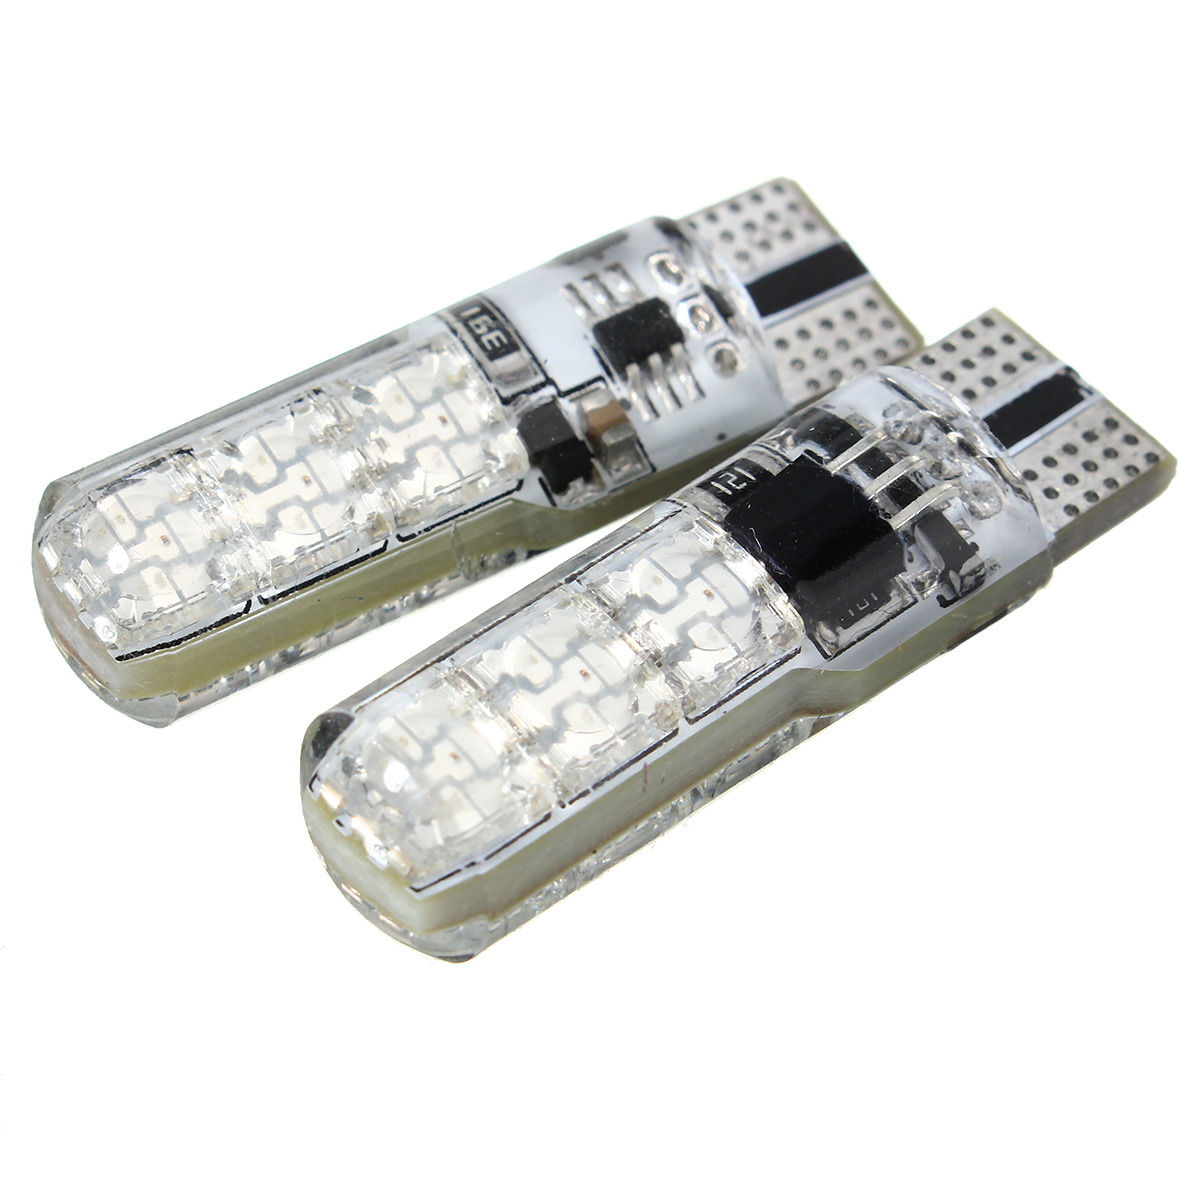 2PCS T10 RGB 6SMD LED Car Side Marker Lights Dome Reading Lights Lamp Bulb with Remote Control